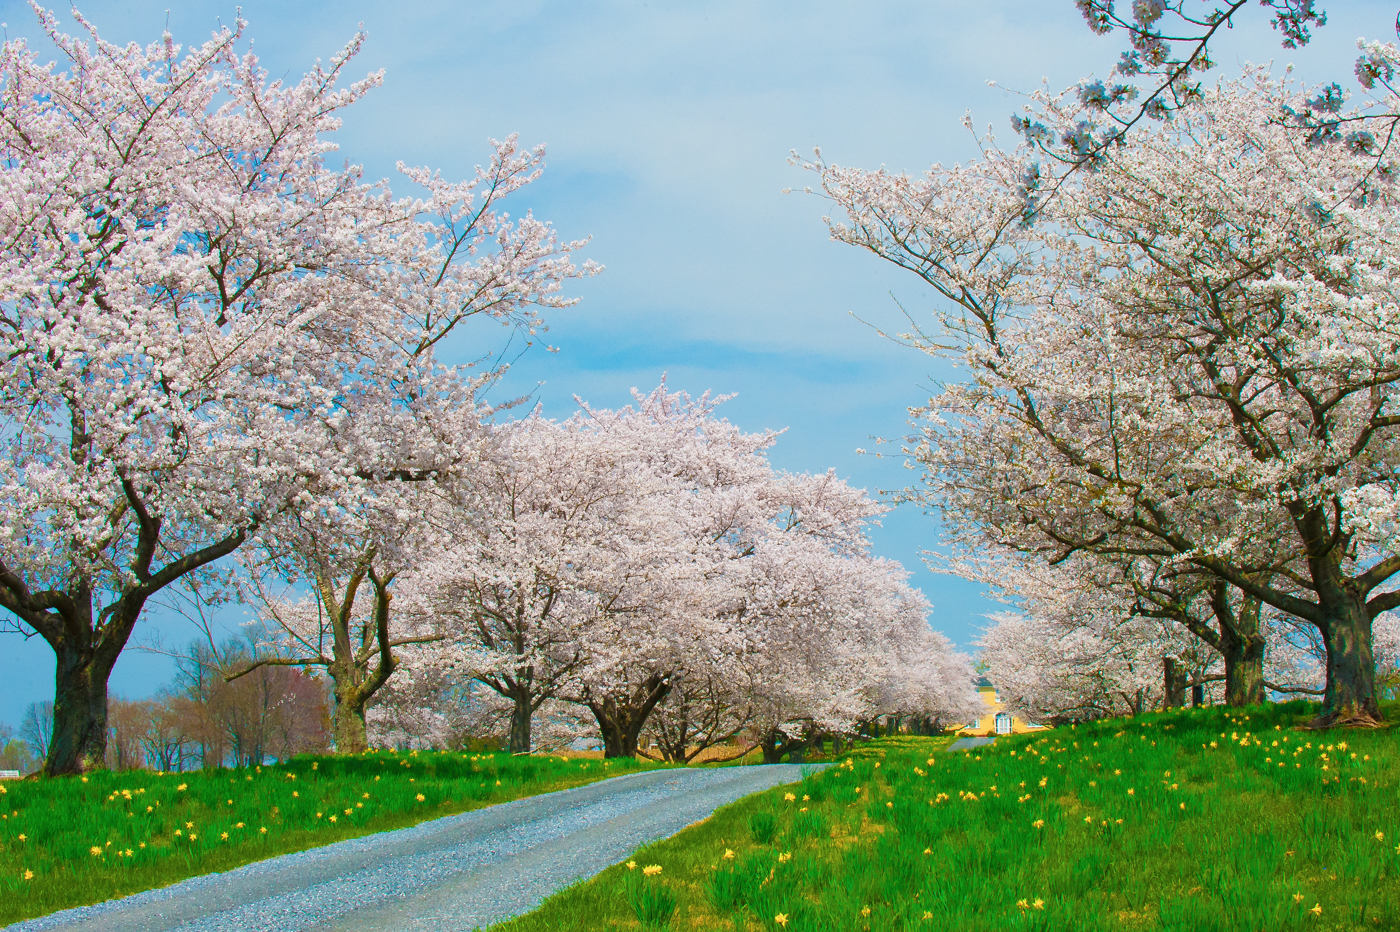 April Cherry Blossoms in Maryland